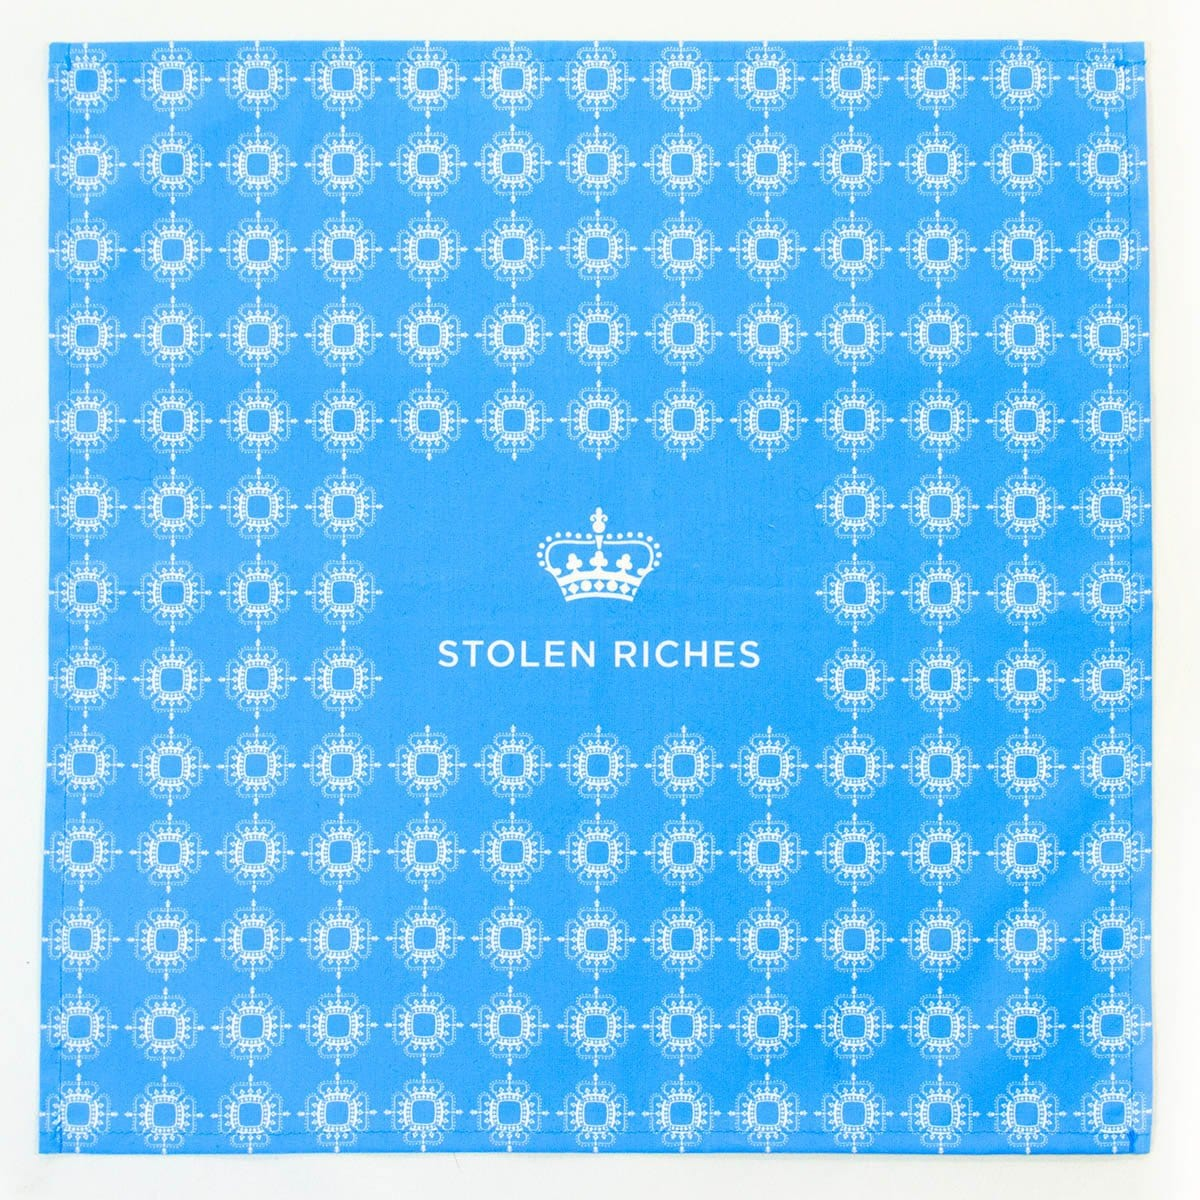 "Dickie Blue - Crown Pattern Pocket Square (13""x13"") - Stolen Riches"